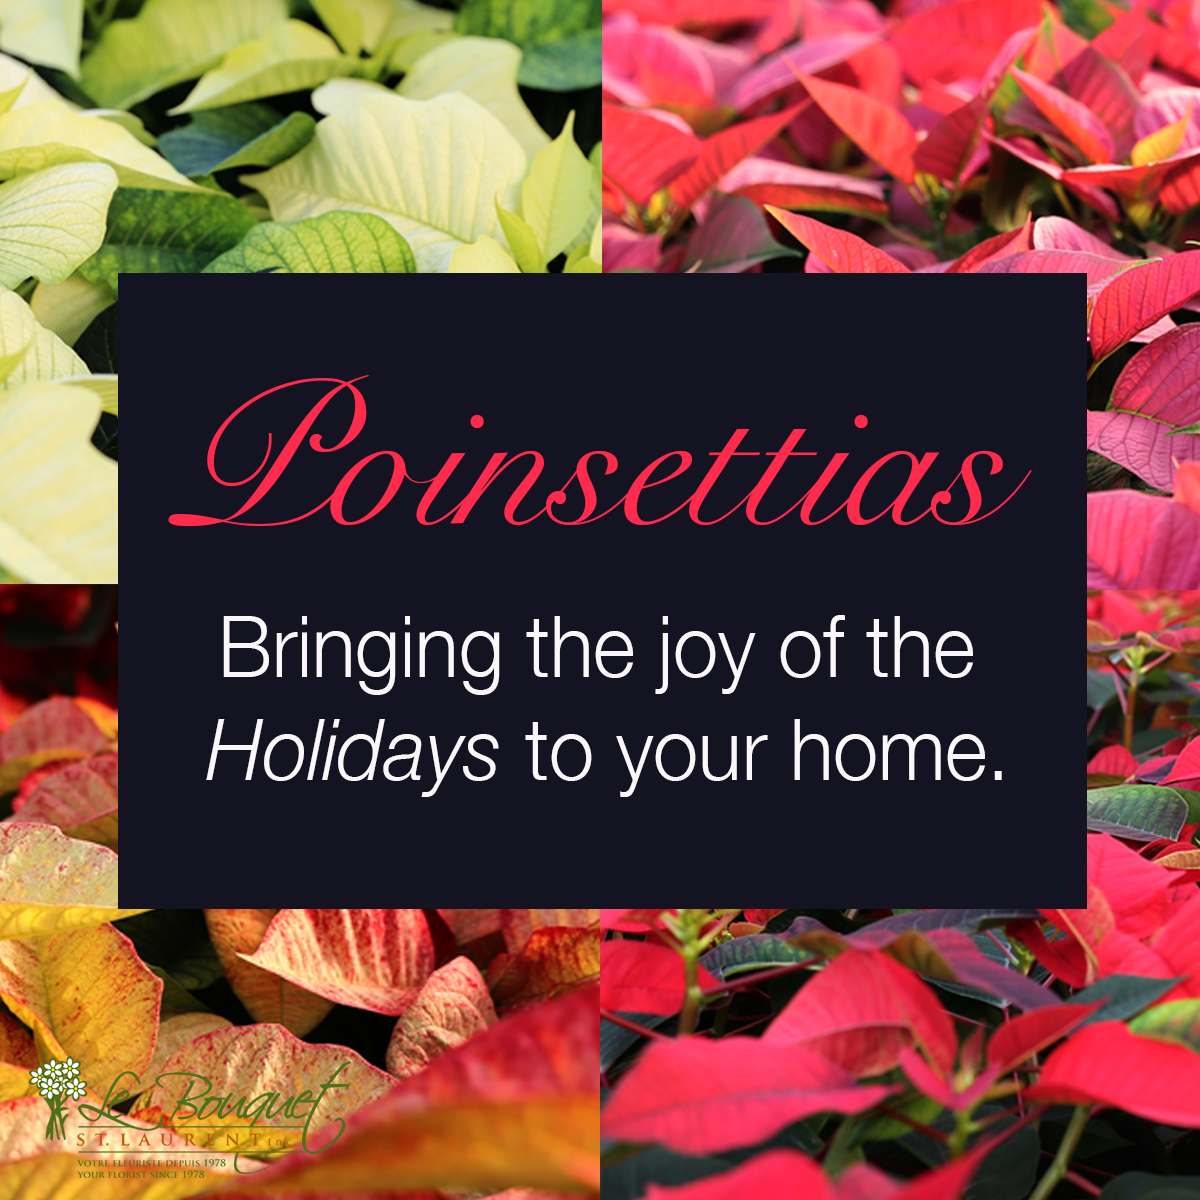 Bringing the joy home for the Holidays with Poinsettias from Montreal florist Le Bouquet St Laurent